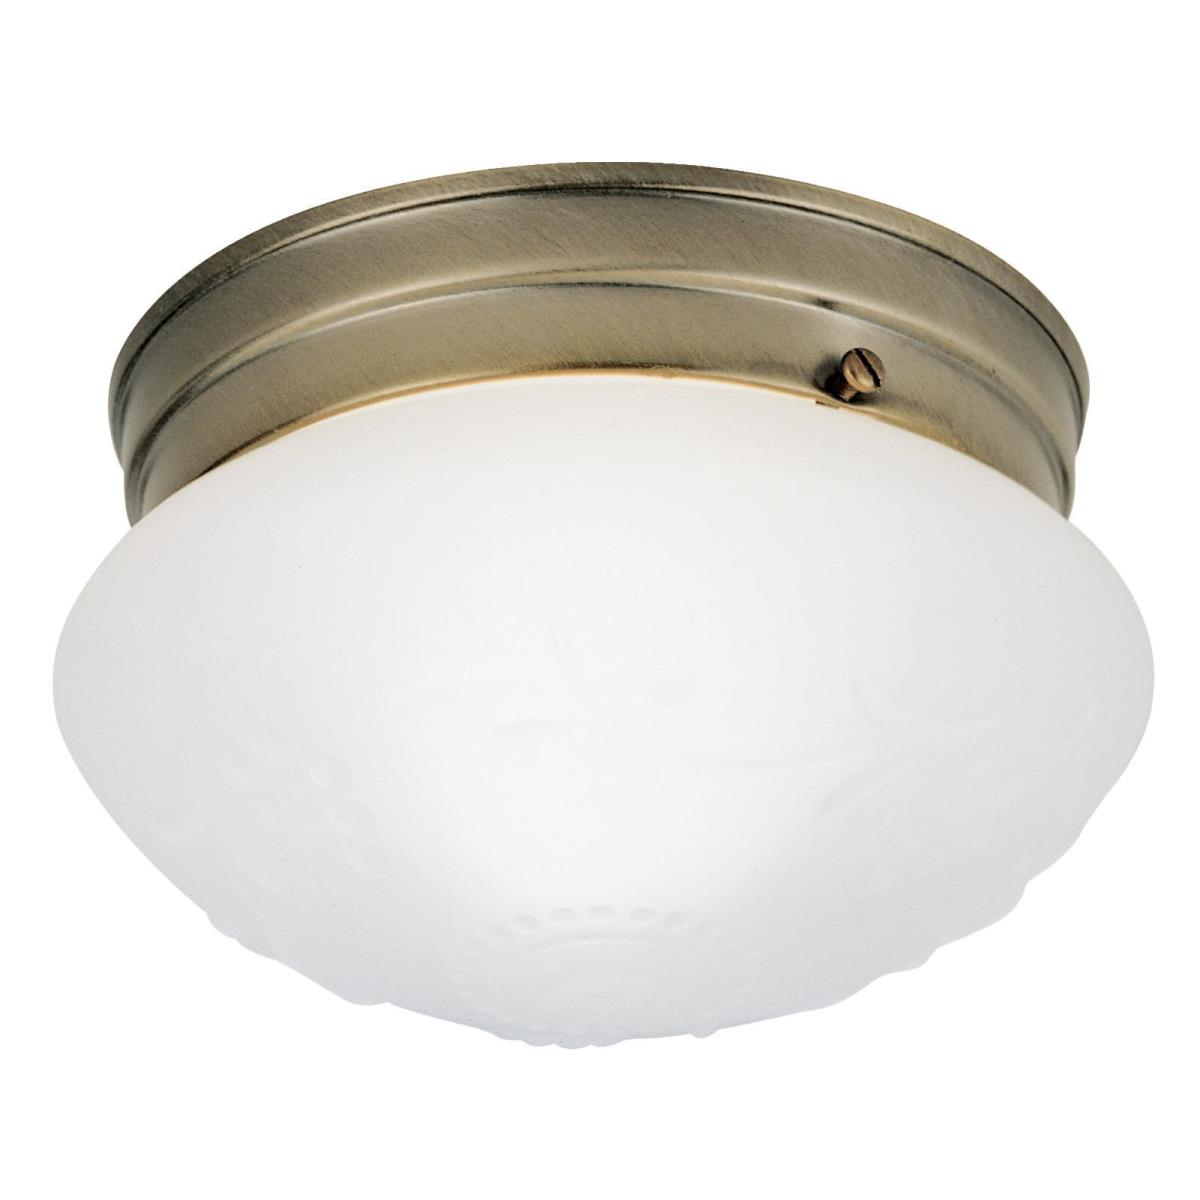 1 Light Flush Ceiling Fixture Antique Brass Finish with Satin White Glass with Design